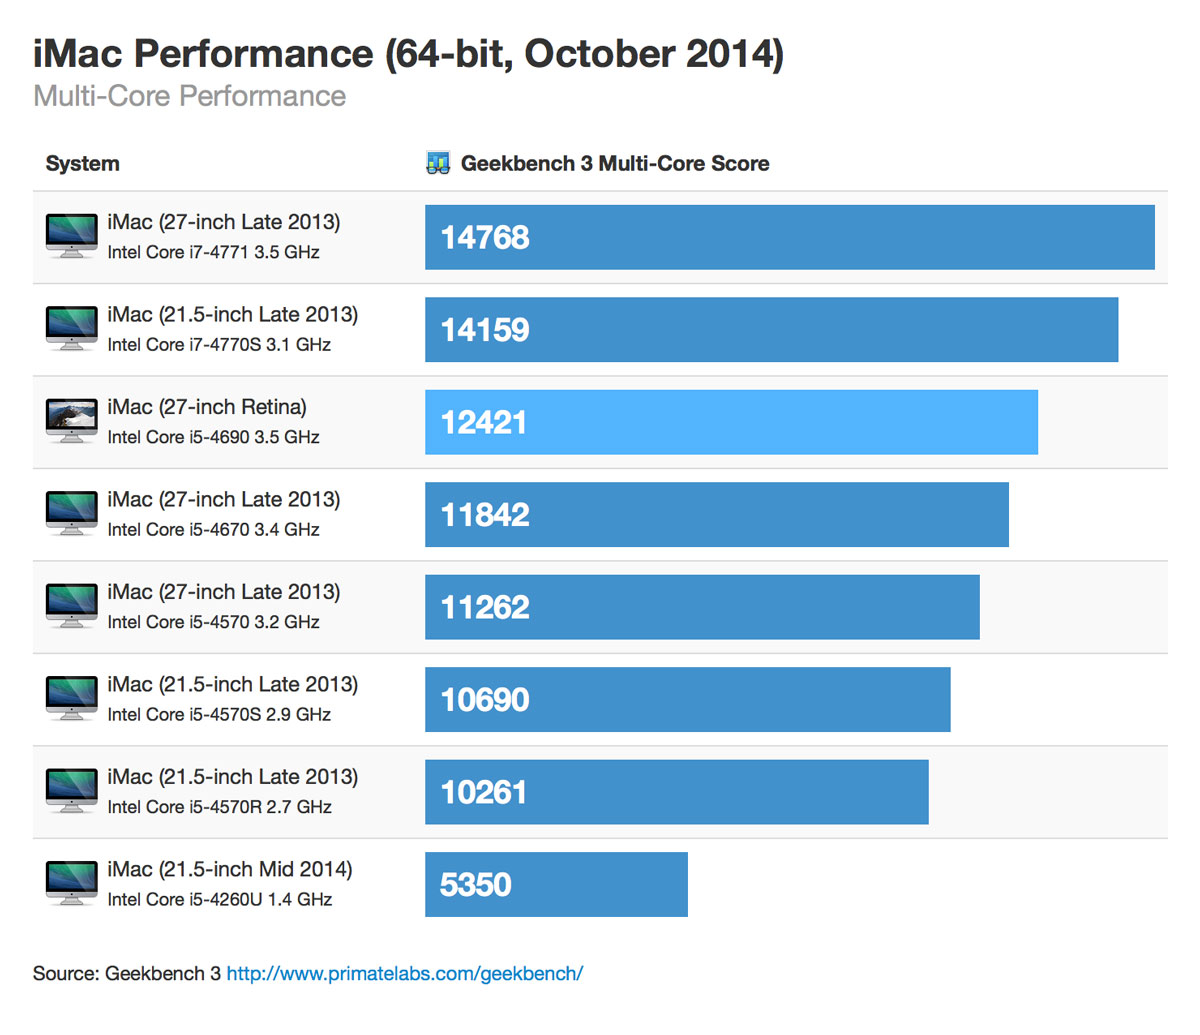 Retina imac 64bit october 2014 multicore